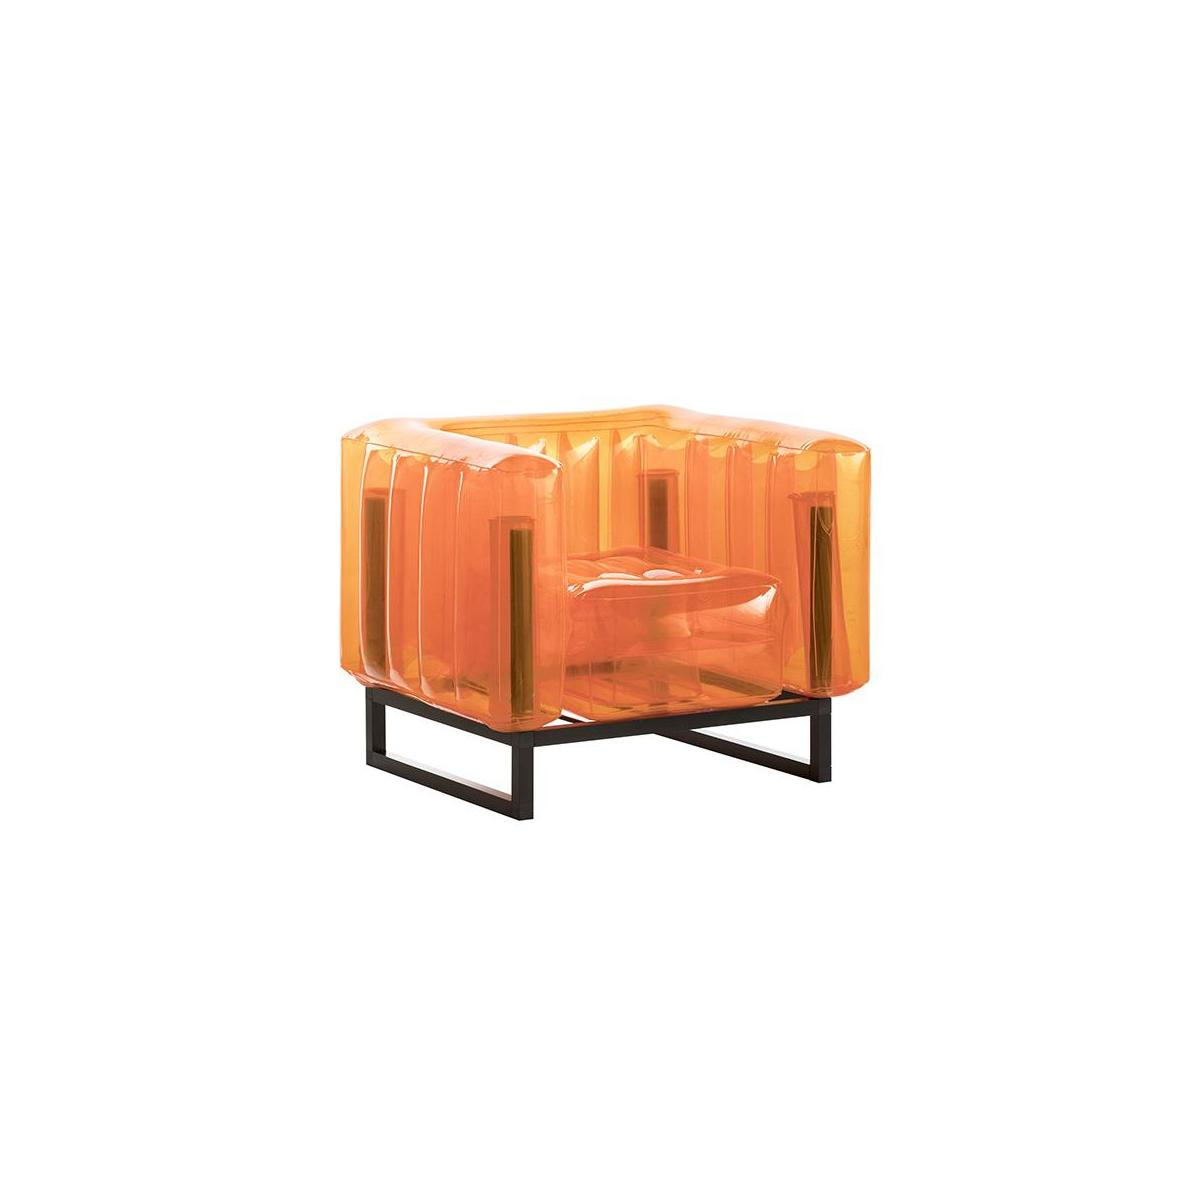 Fauteuil gonflable en PVC - Orange n°1